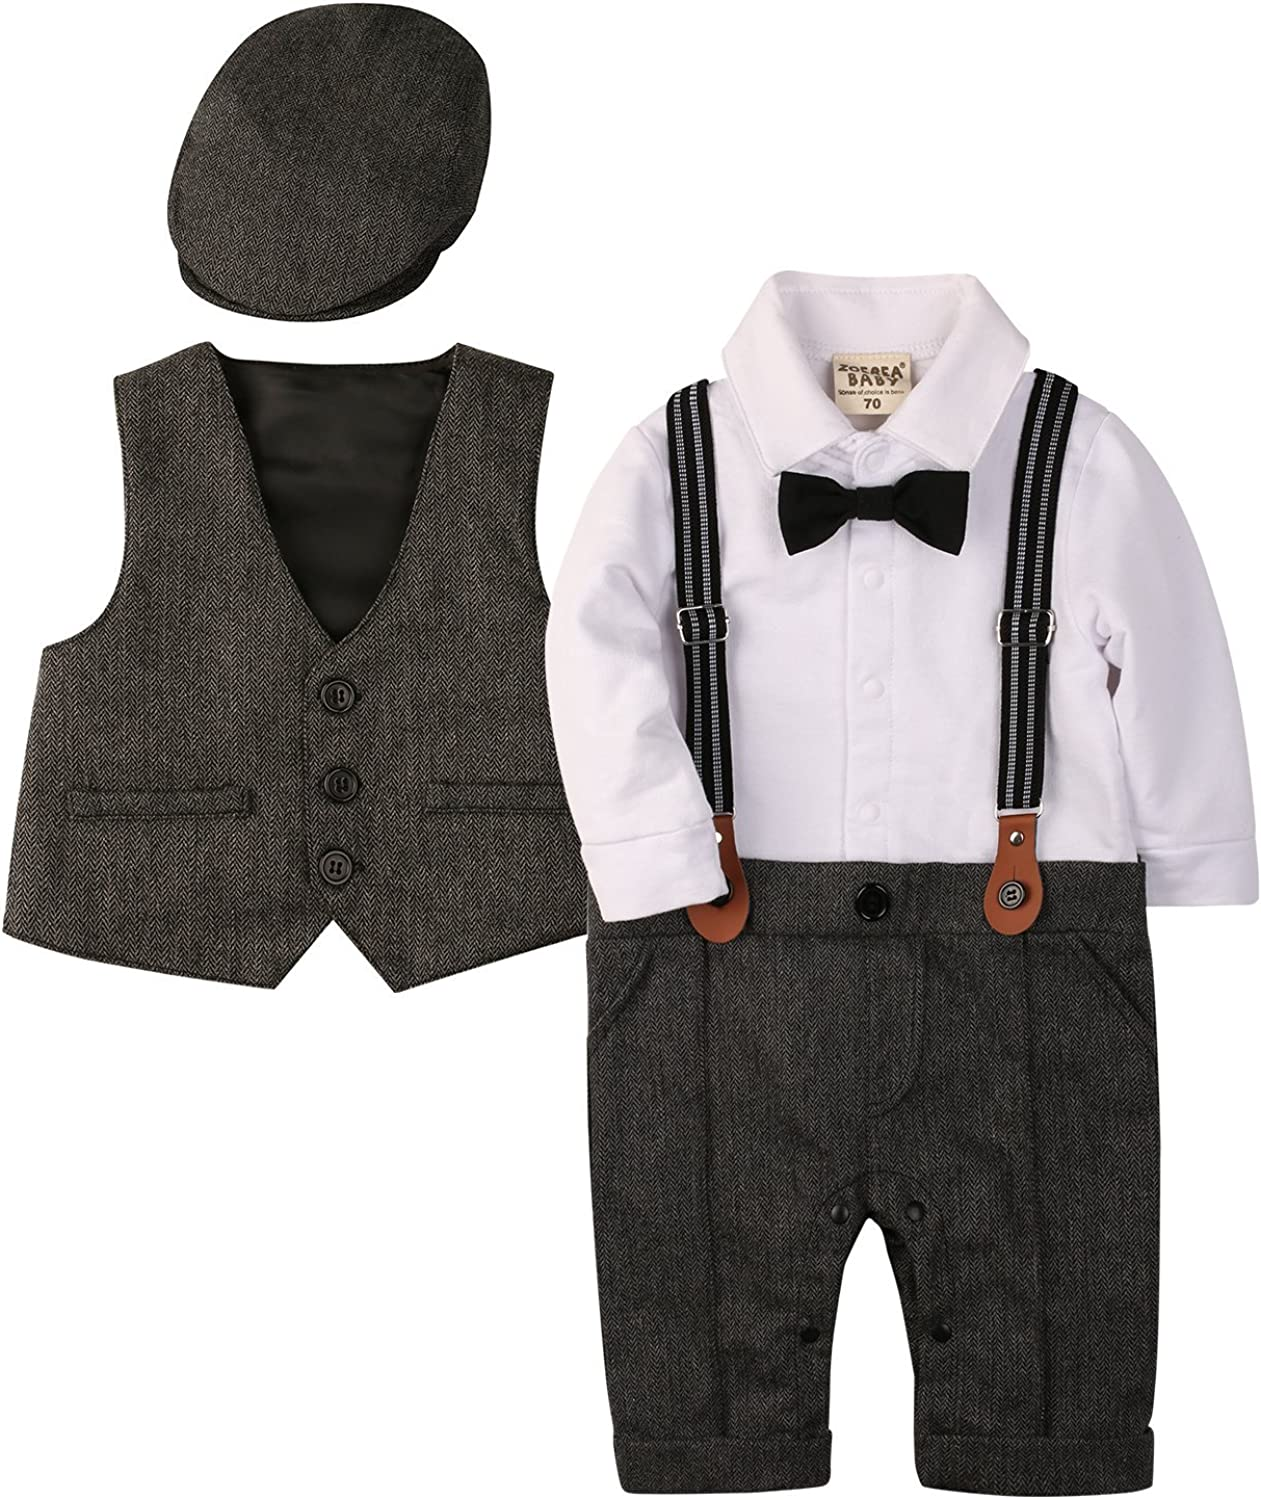 Pants Straps Outfits Toddler Boy Gentleman Party Wedding Formal Straps Suits ZOEREA Baby Boys Clothing Sets Bow Ties Shirts